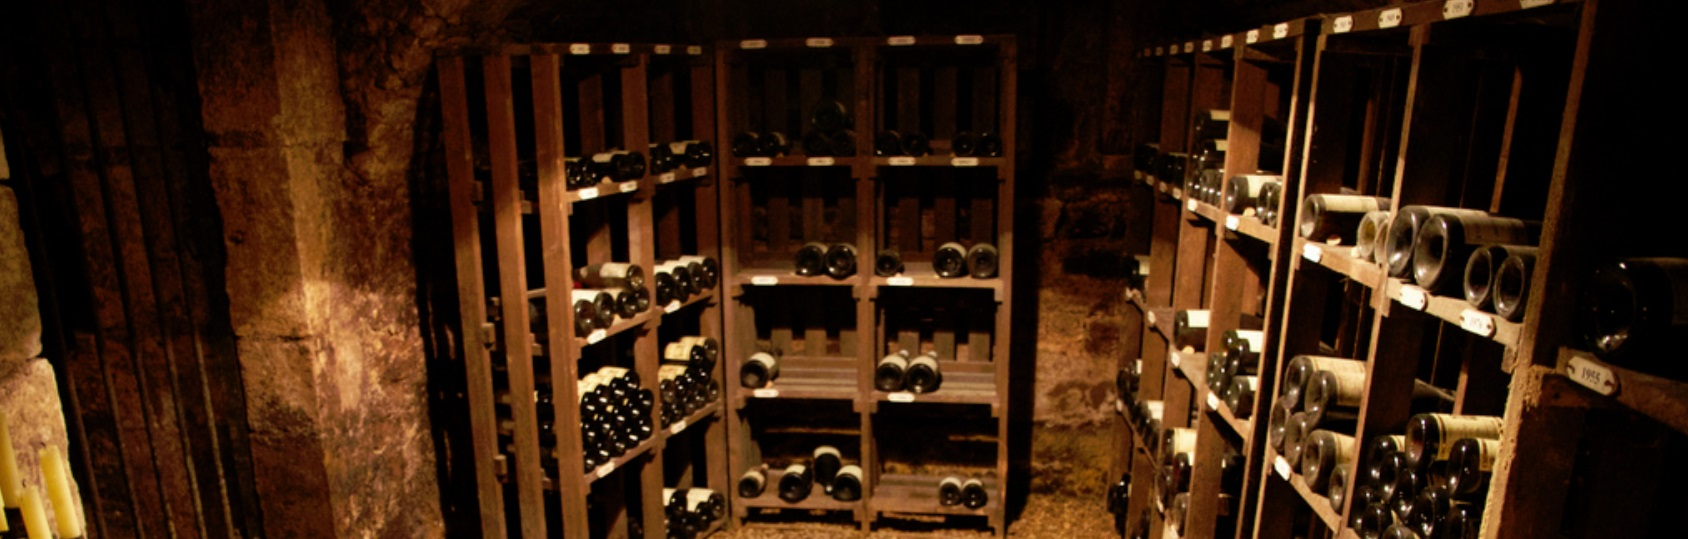 Recommendations for Wine Racks – Part 3